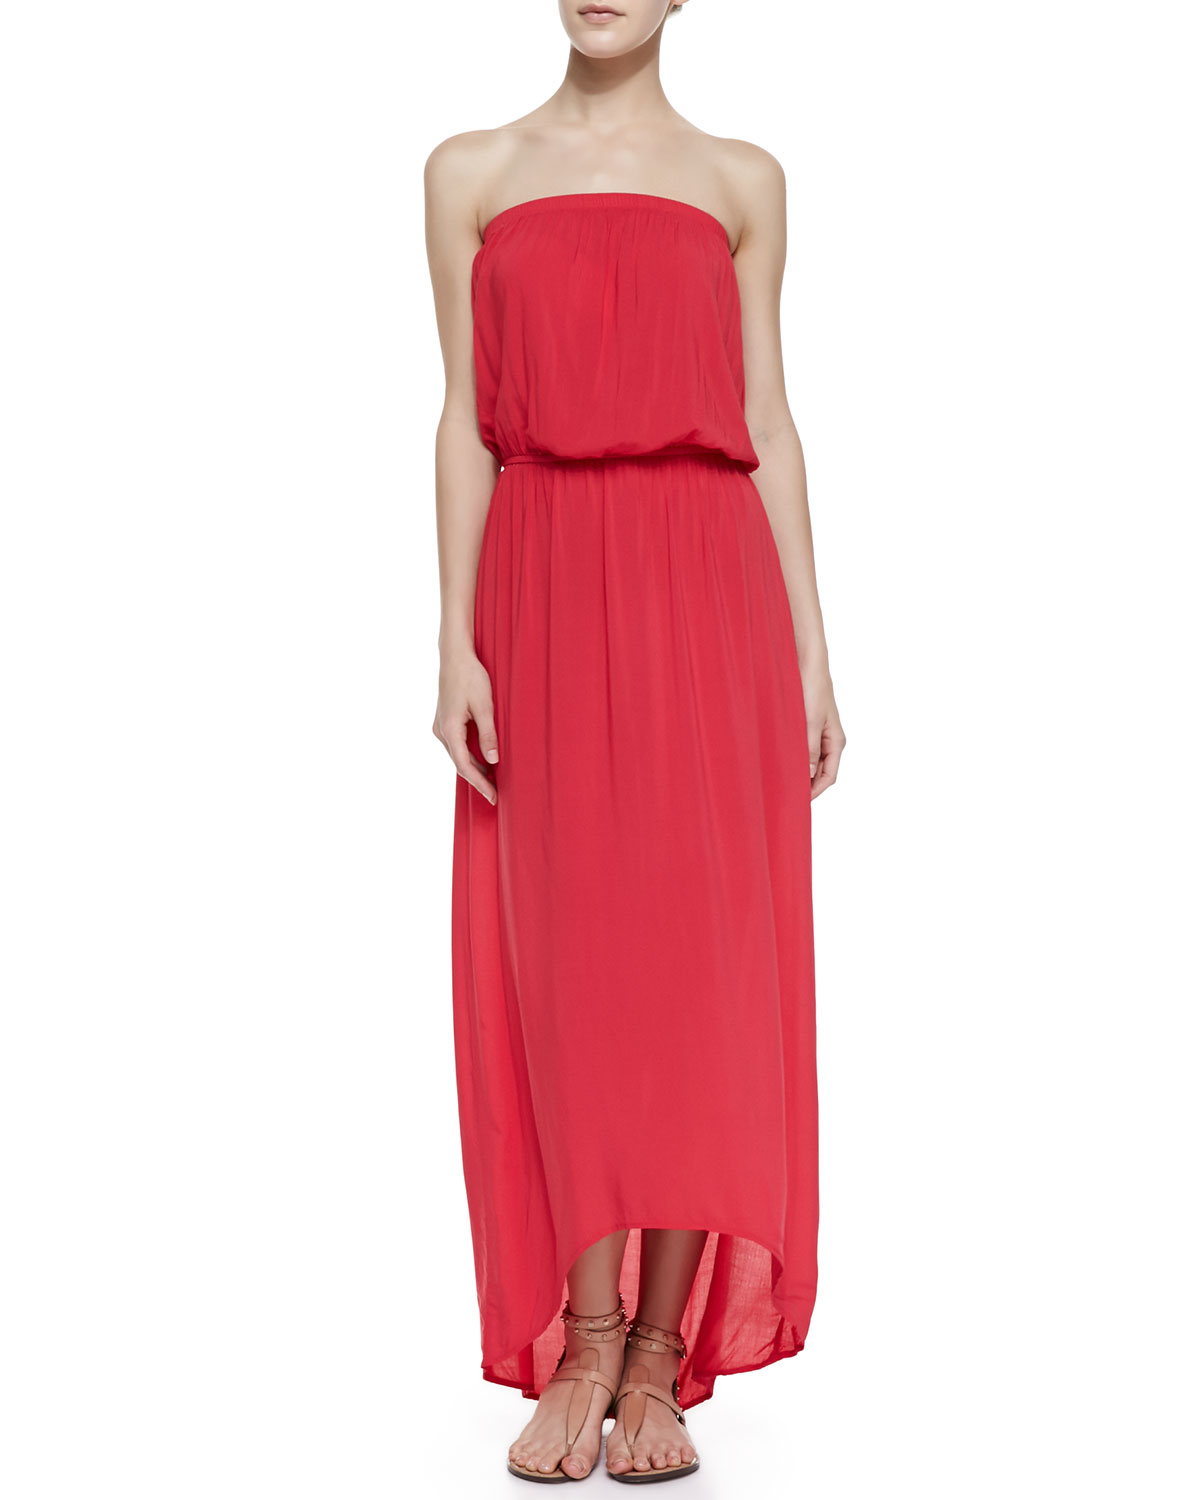 Womens Power Strapless Arched Voile Maxi Dress, Red   Lily Aldridge for Velvet